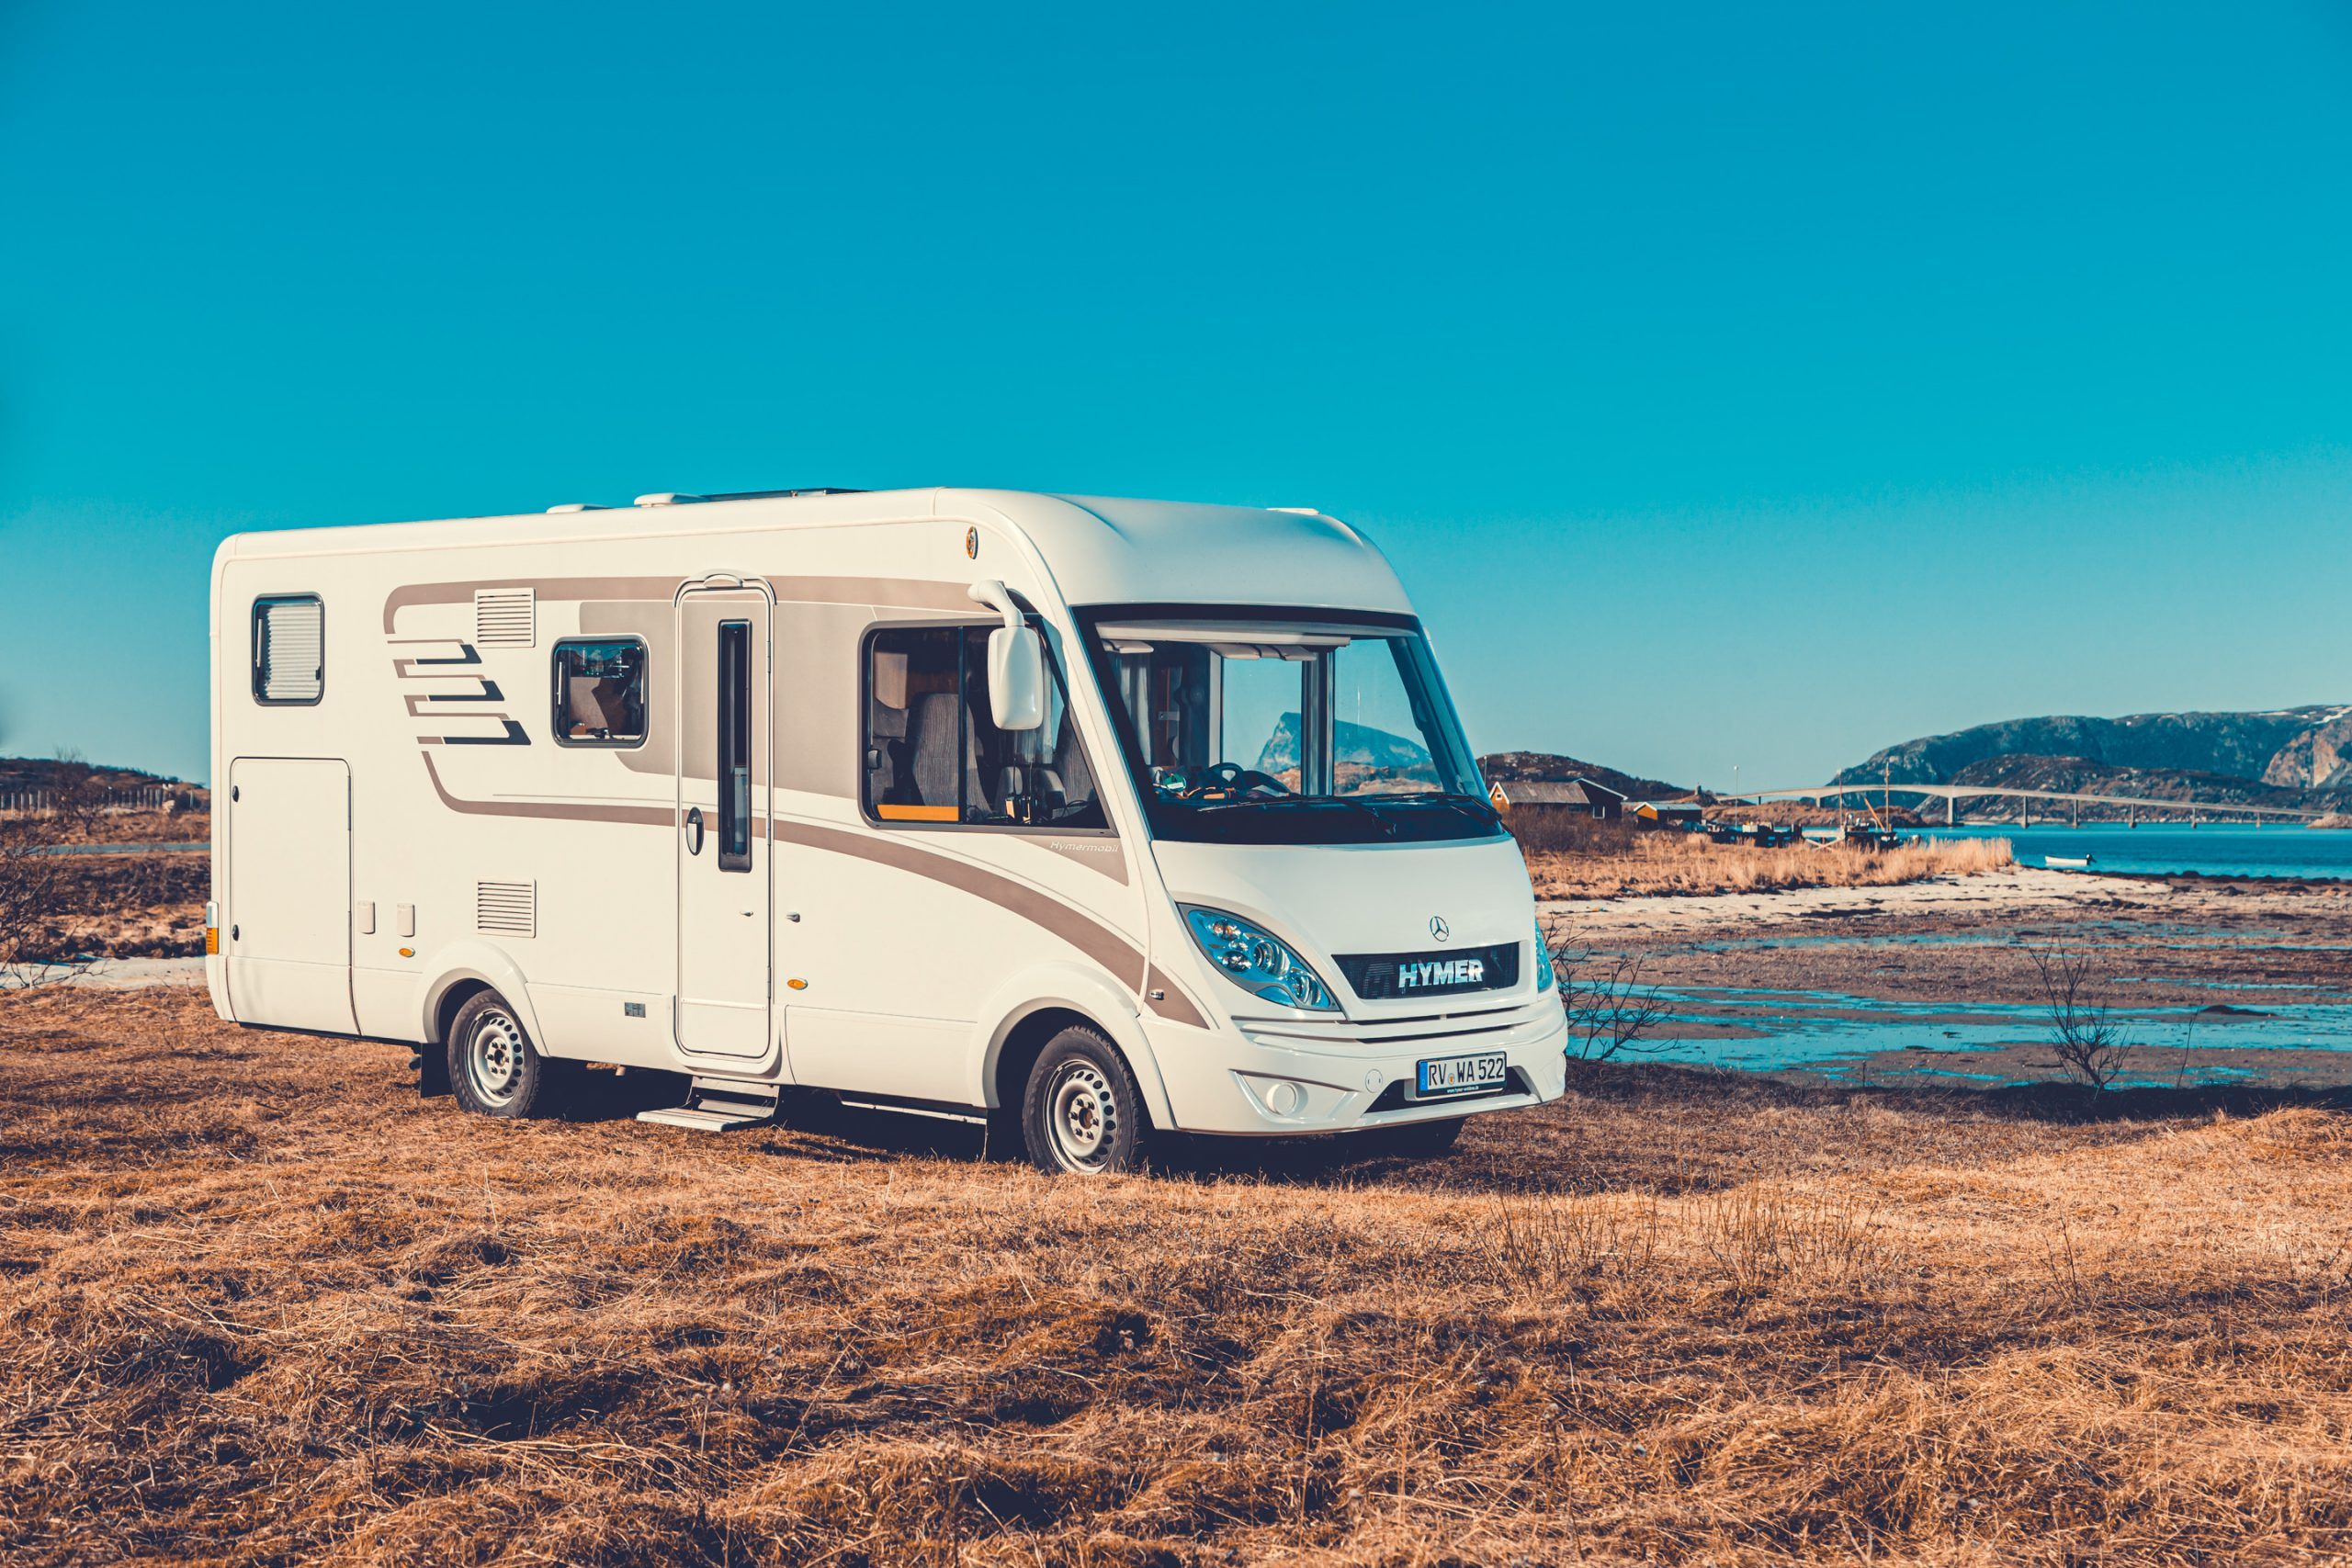 Hymer Automotive Wohnmobil Fotografie in Sommarøy - Norwegen